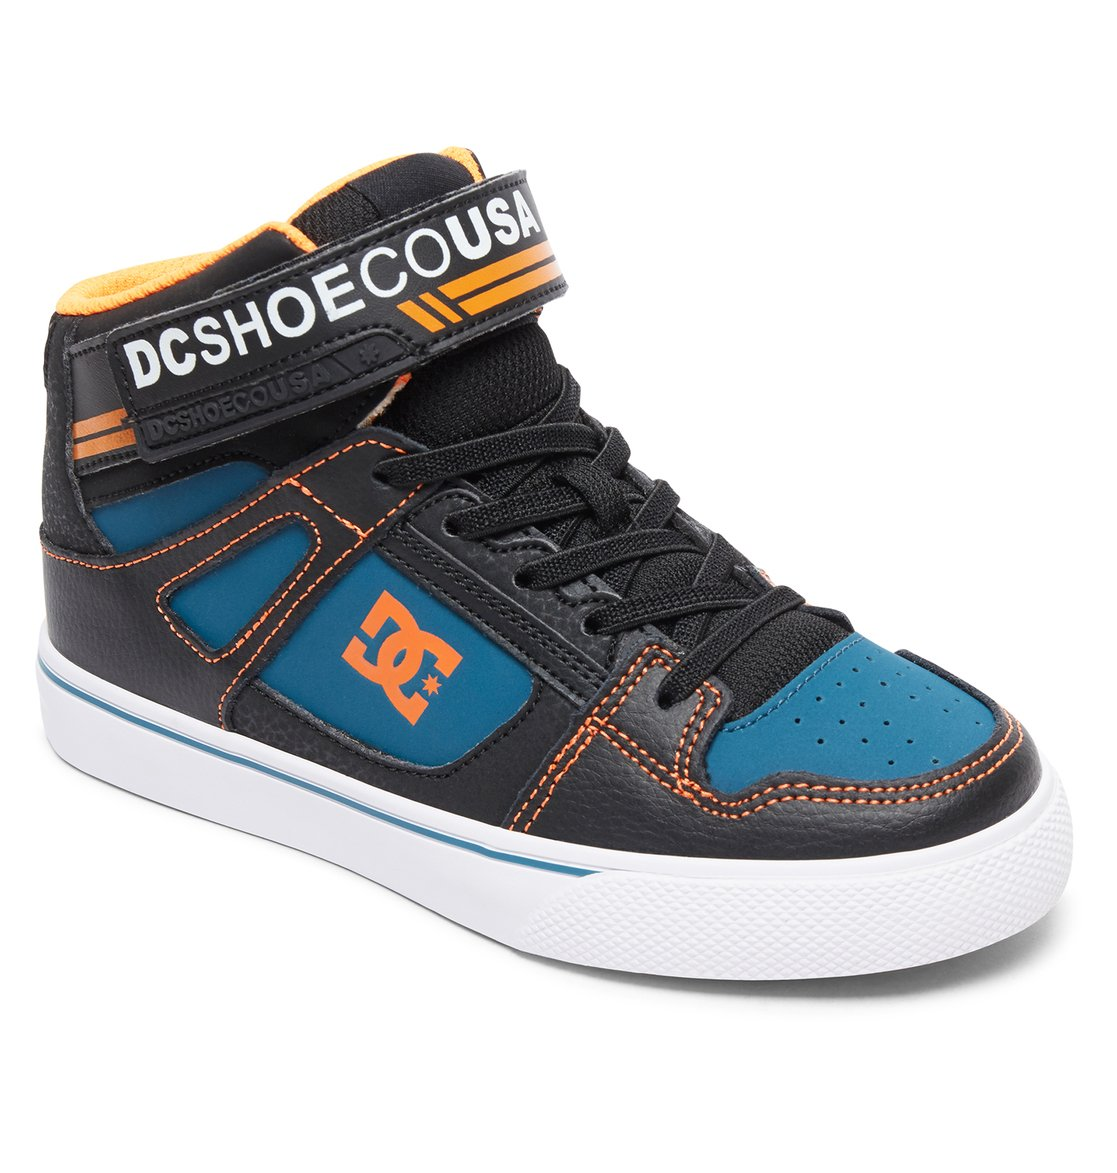 7d2c921bbc Pure High EV - High-Top Shoes for Boys